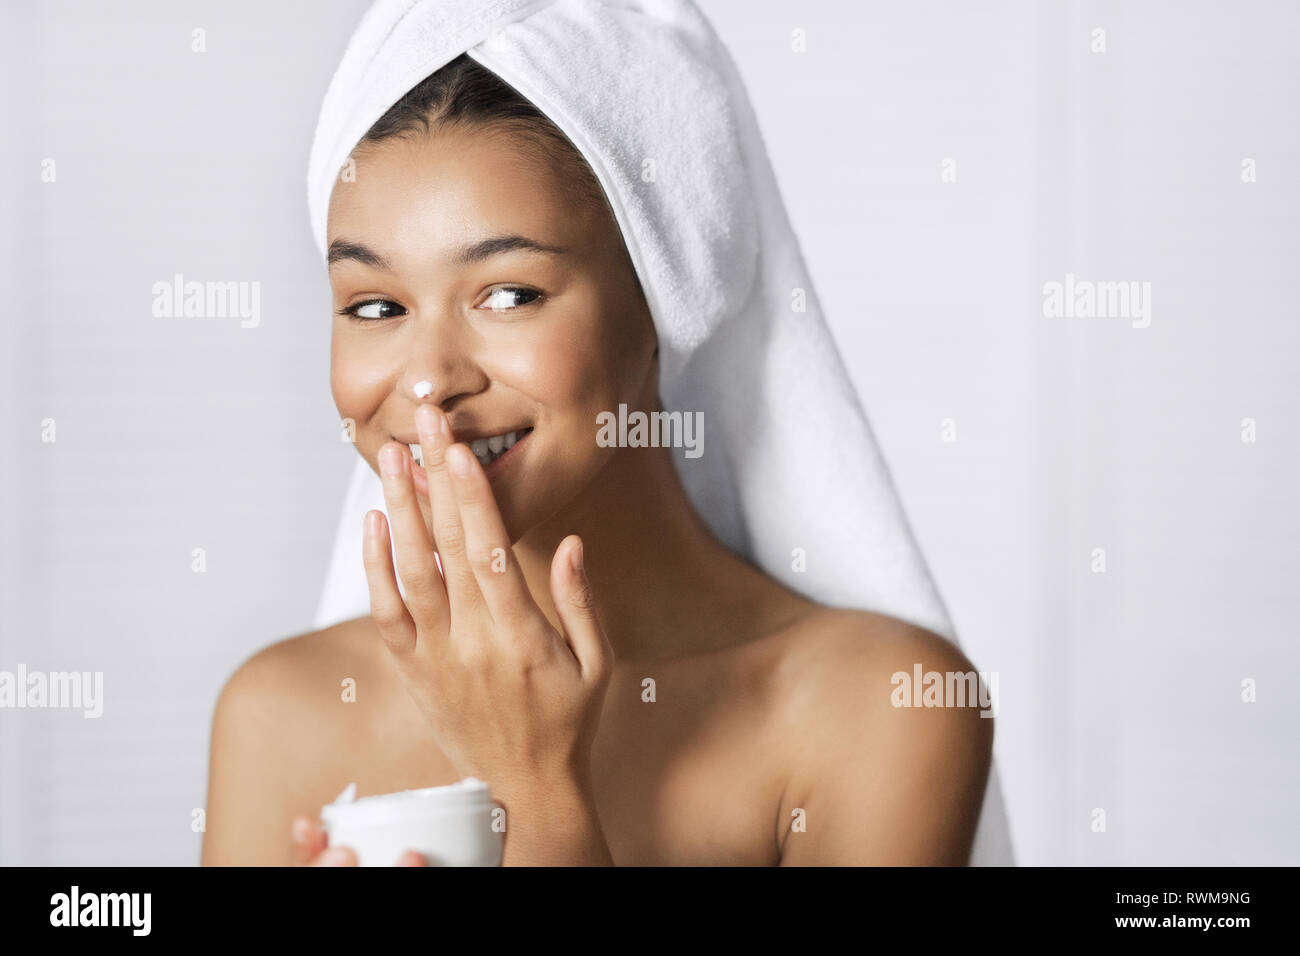 Beauty and care concept - Stock Image